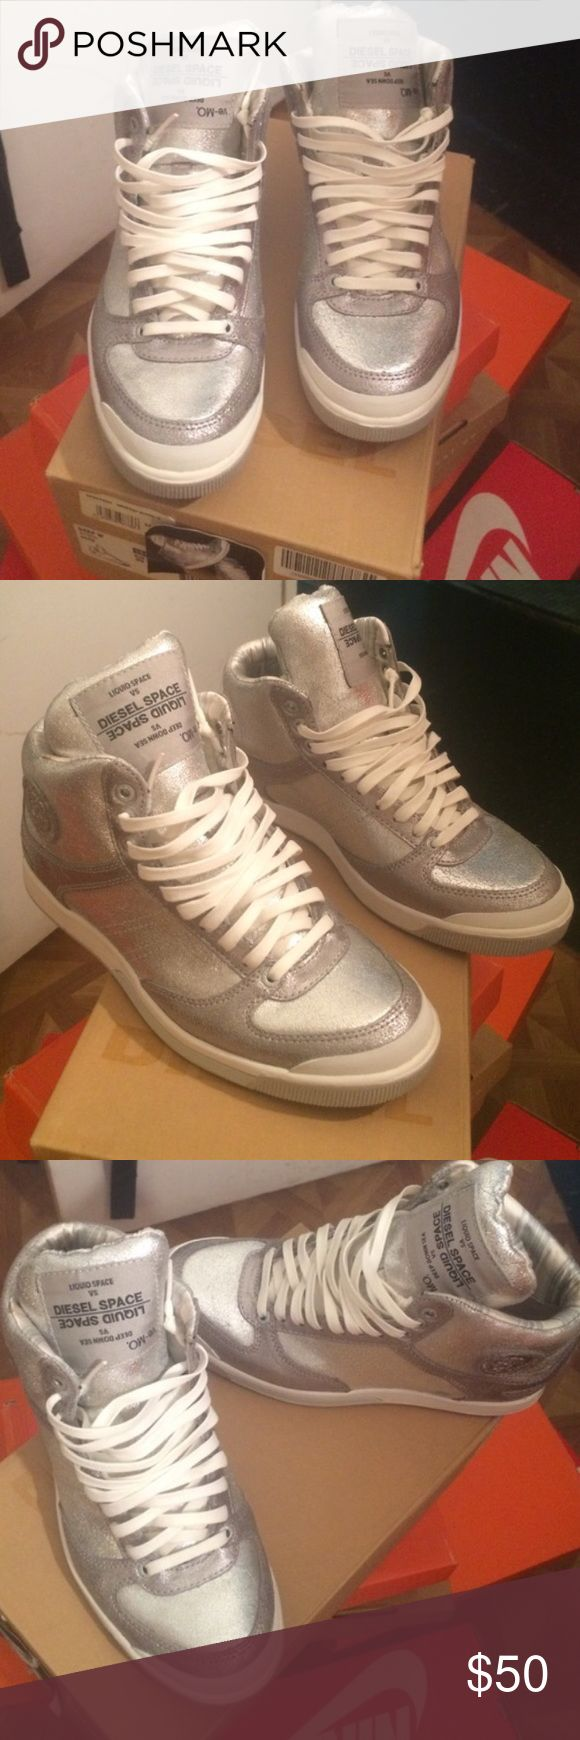 Rare Diesel Silver White High Sneaker Rare Diesel Silver White High Sneaker. BRAND NEW. NEVER WORN. No Trades.🛑🛑I ship only Sneakers. I do not ship the sneaker box.🛑🛑 Diesel Shoes Sneakers